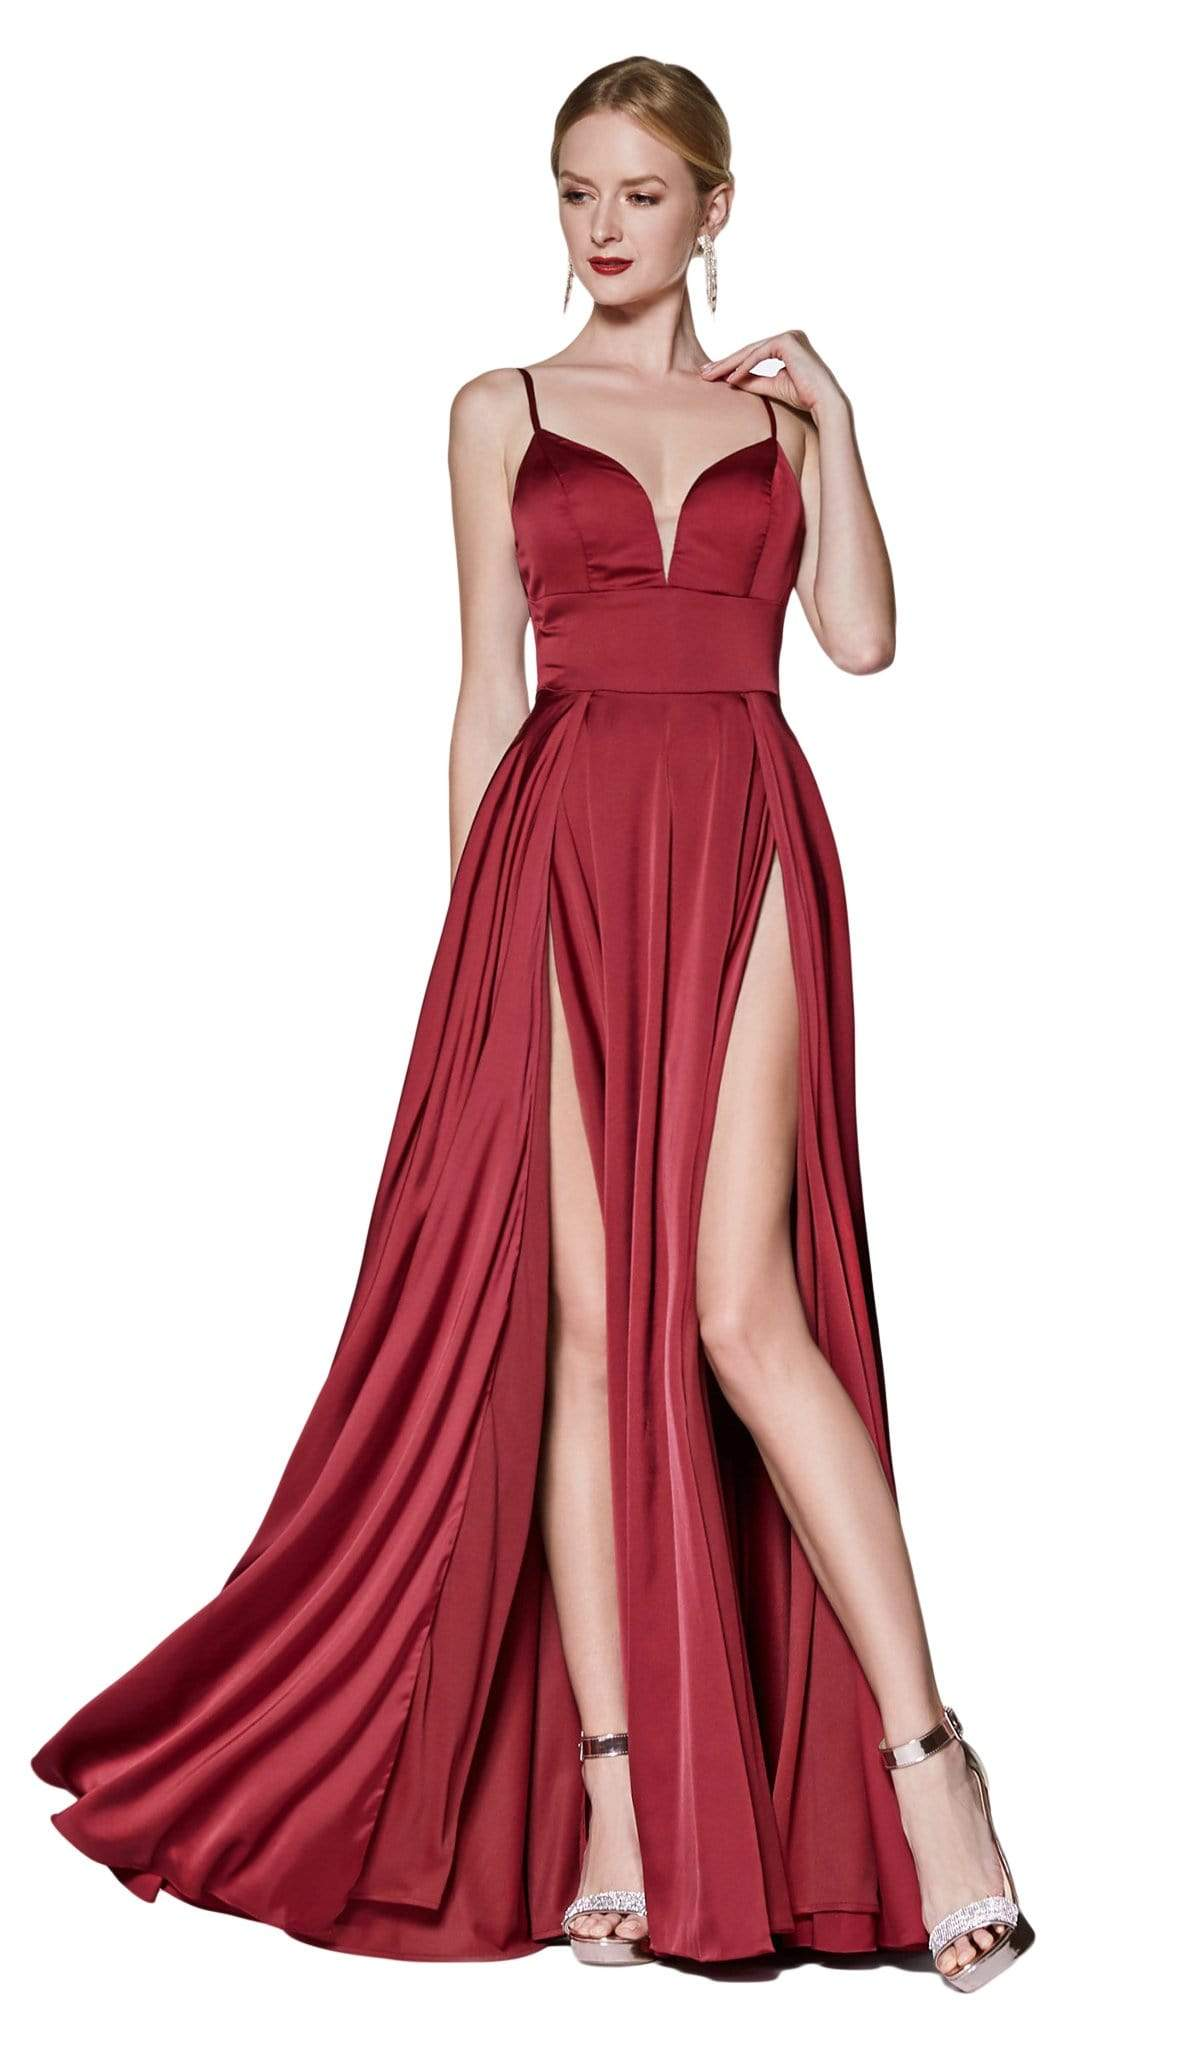 Cinderella Divine - CJ526 Sheer Plunging Neck Double Slit Satin Gown Special Occasion Dress 2 / Burgundy